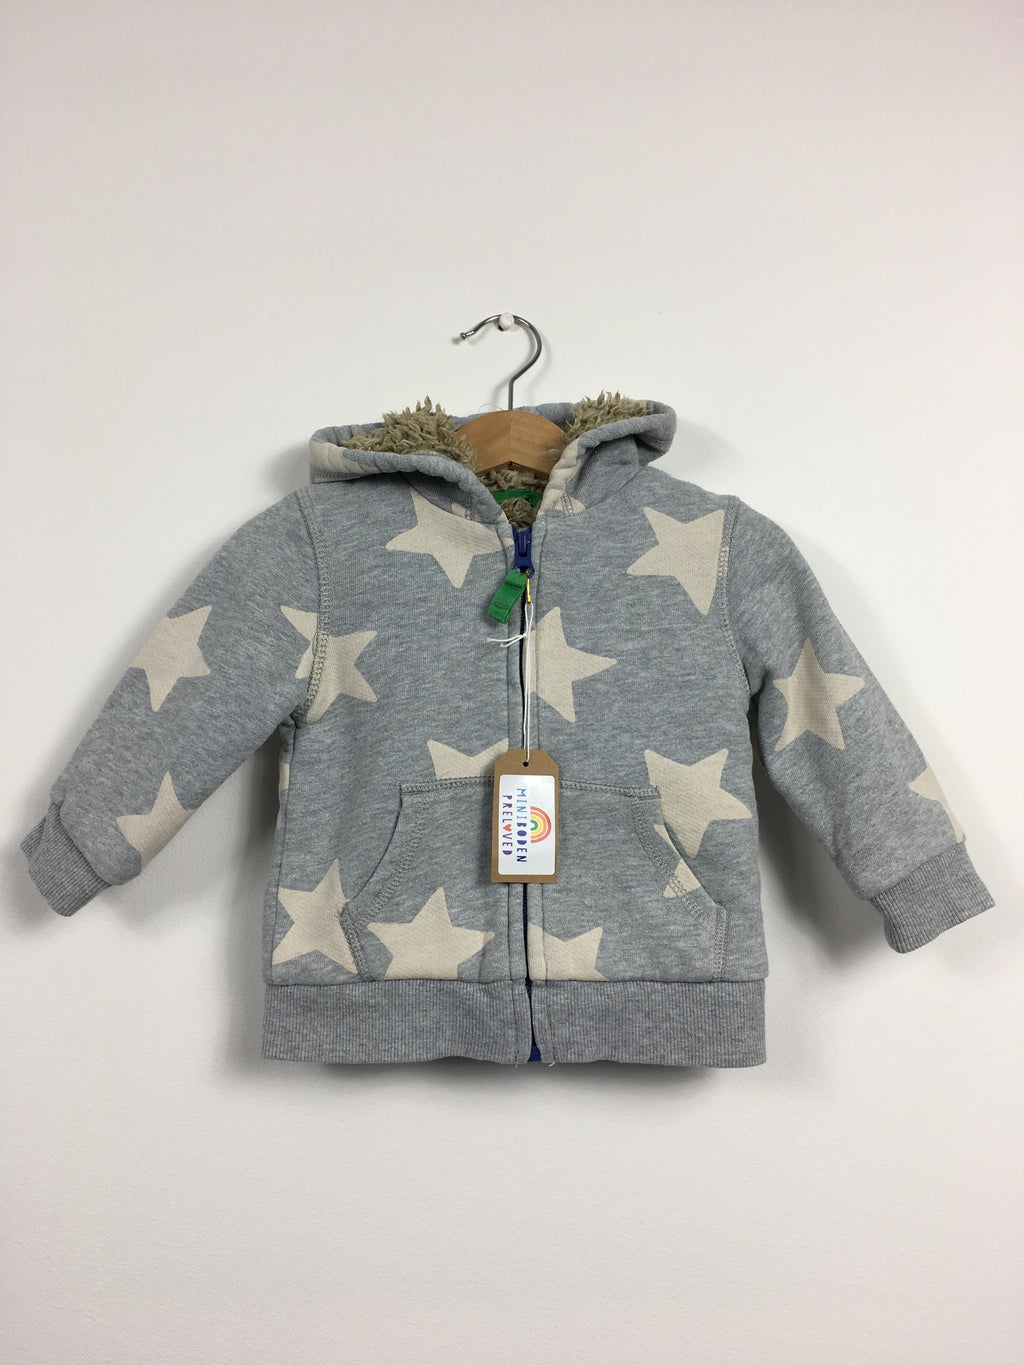 Hooded Shaggy Lined Star Print Jumper (Age 6-12 Months)